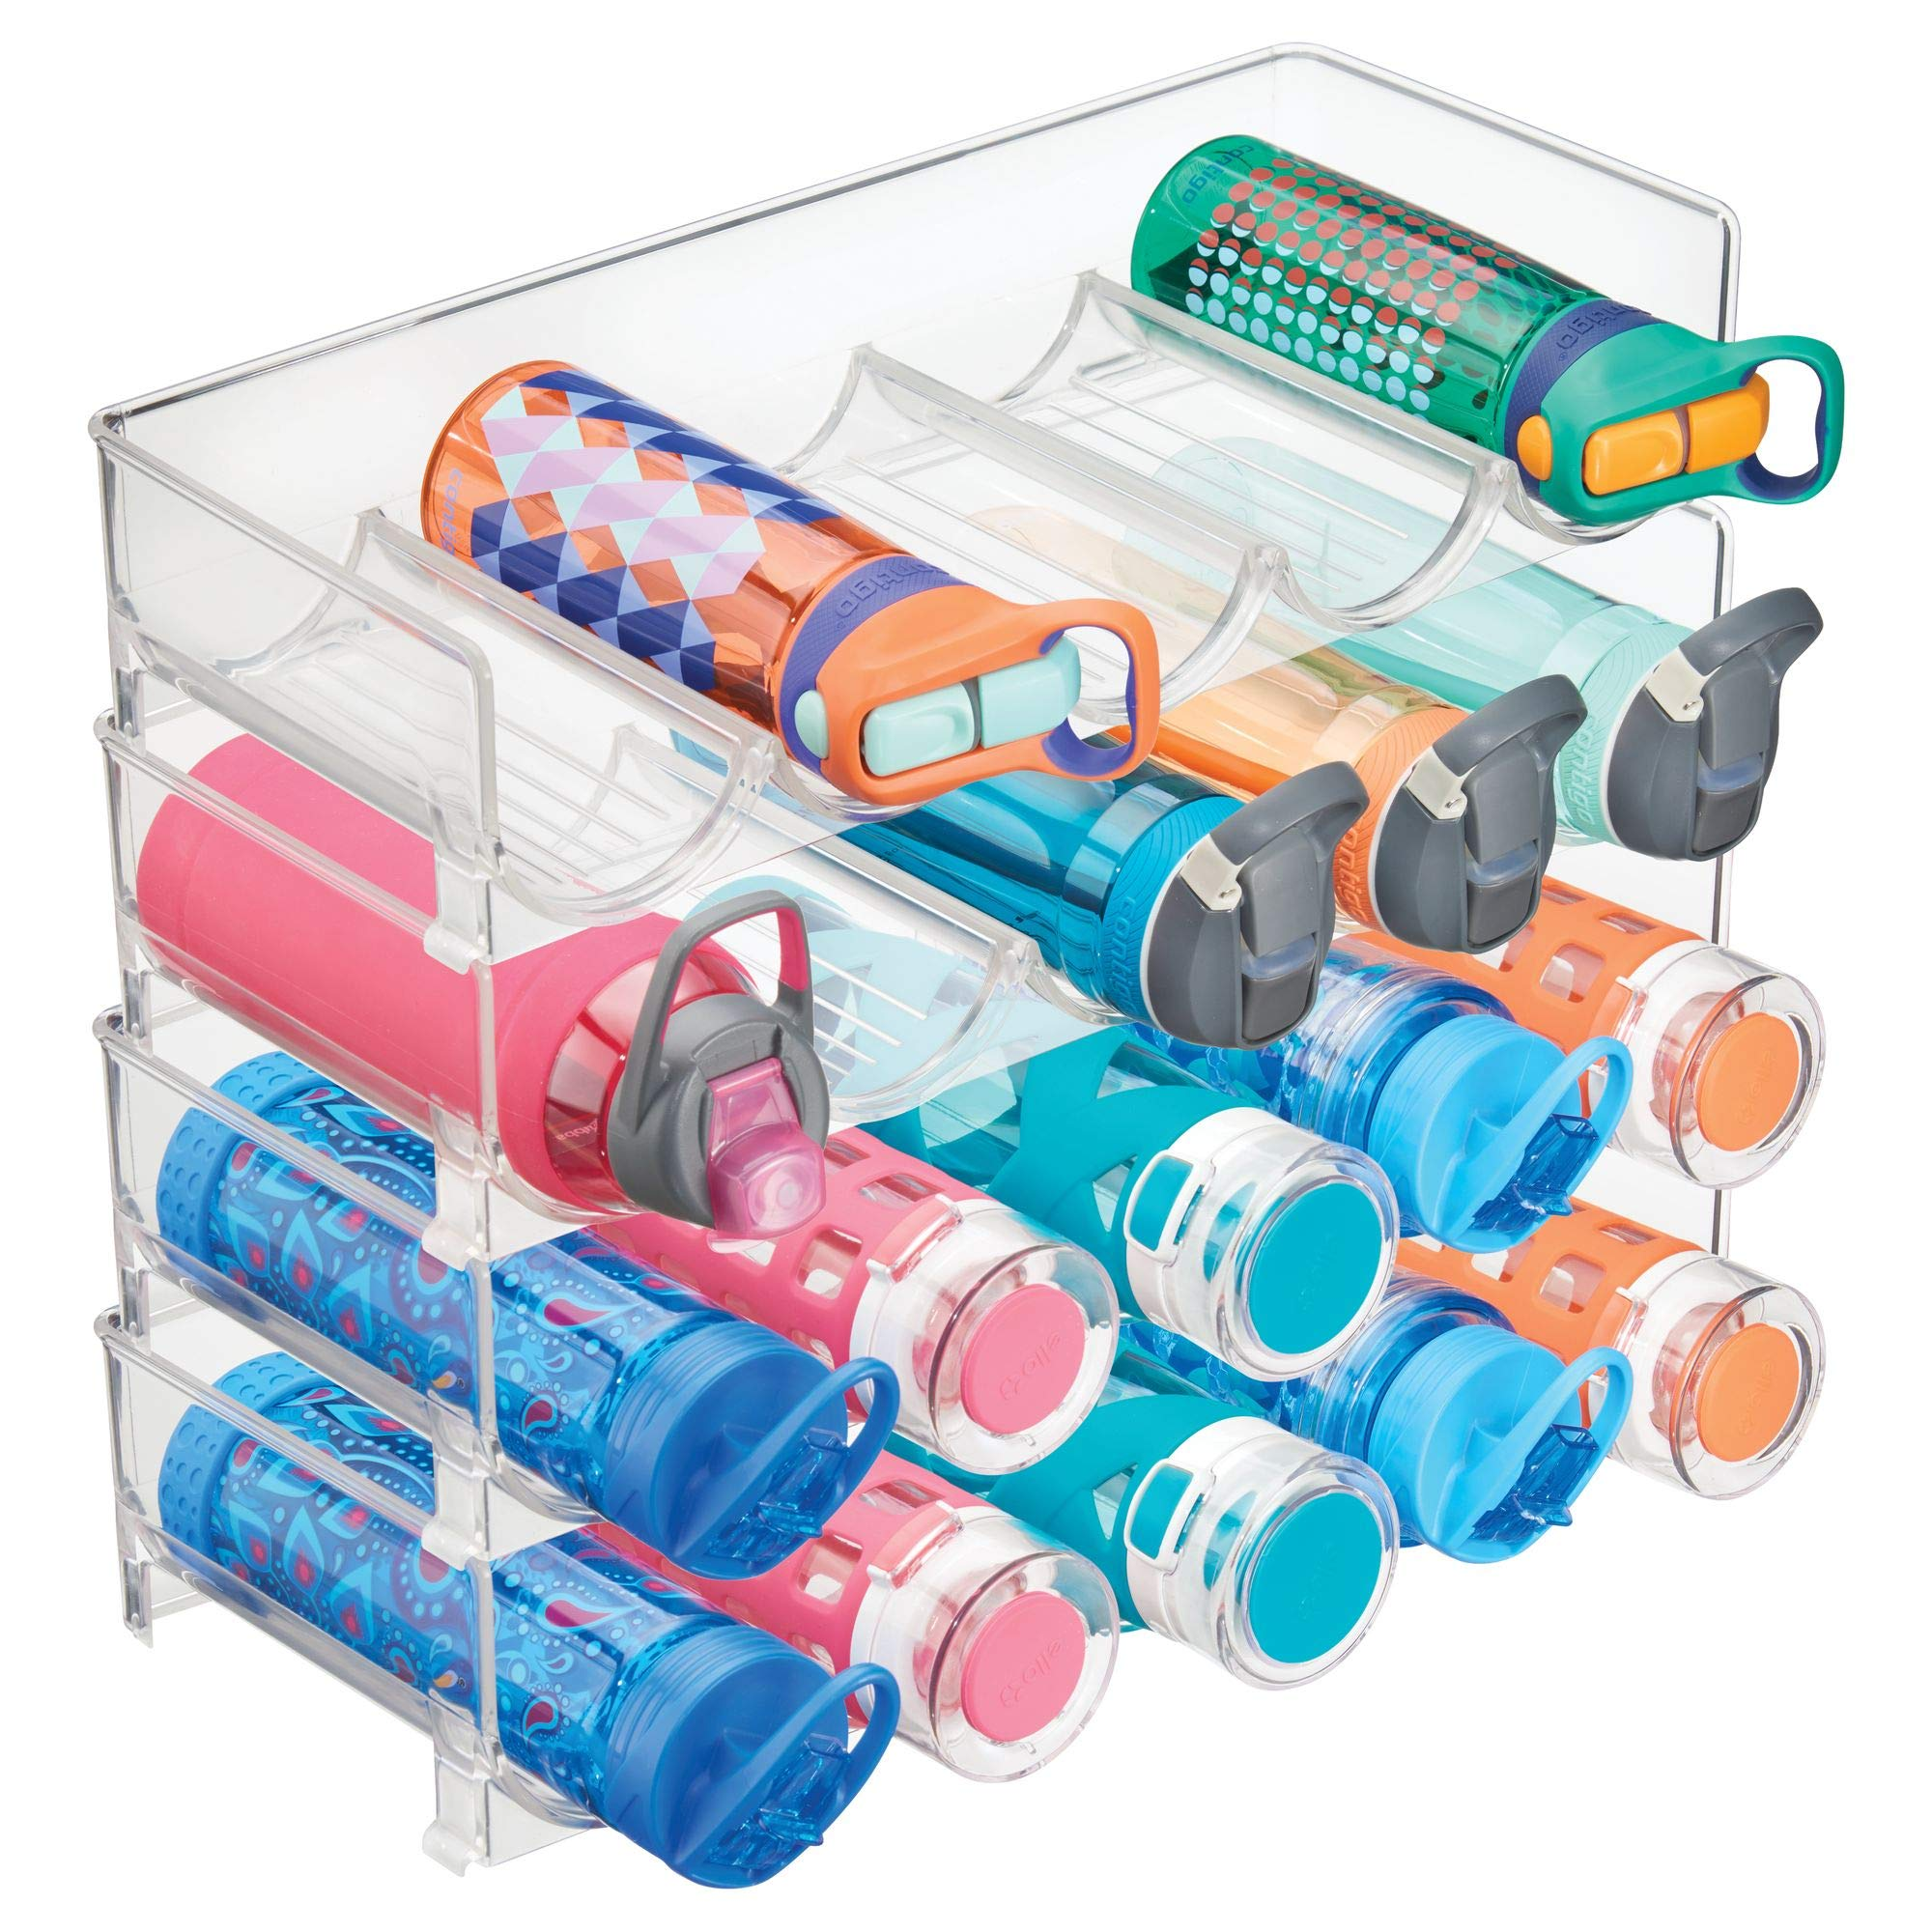 mDesign Plastic Free-Standing Water Bottle and Wine Rack Storage Organizer for Kitchen Countertops, Table Top, Pantry, Fridge - Stackable, Each Rack Holds 5 Bottles - Pack of 4, Clear